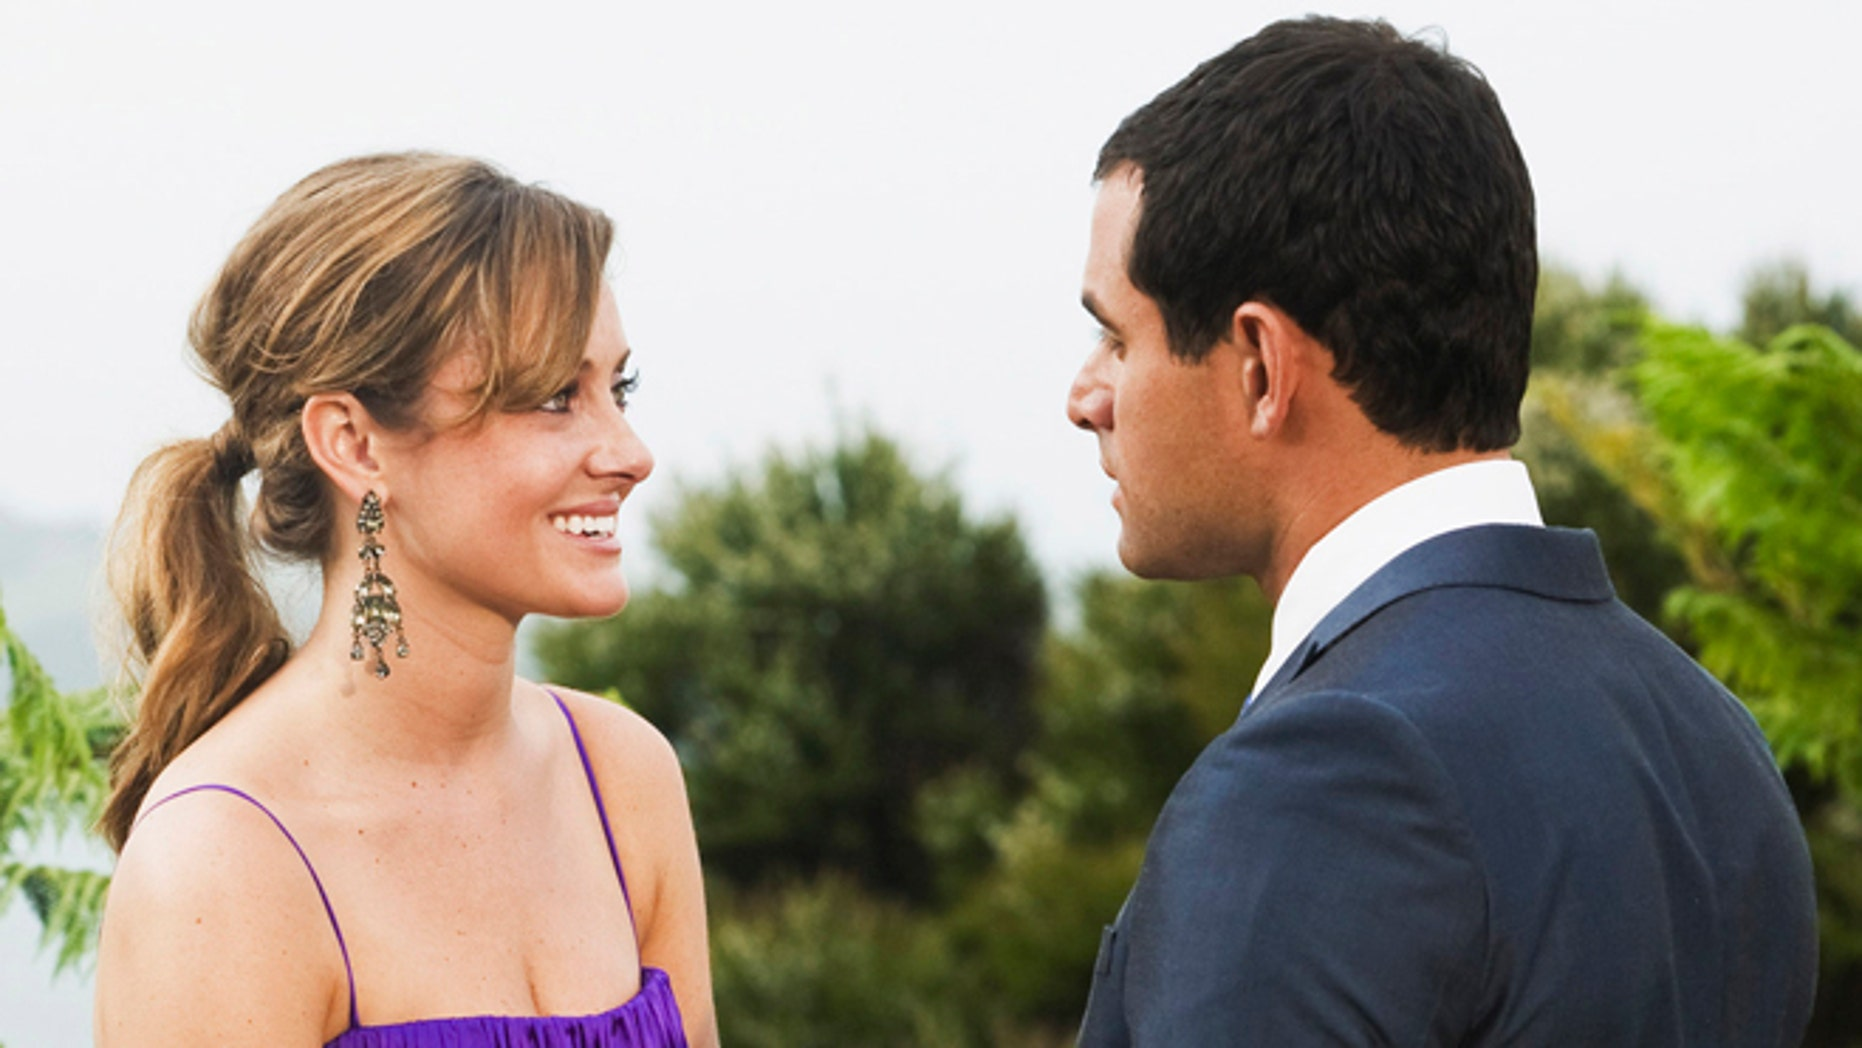 """In this file image originally released by ABC, Jason Mesnick, right, is shown with Molly Malaney on the season finale of """"The Bachelor,"""" airing Monday, March 2, 2009 on ABC."""